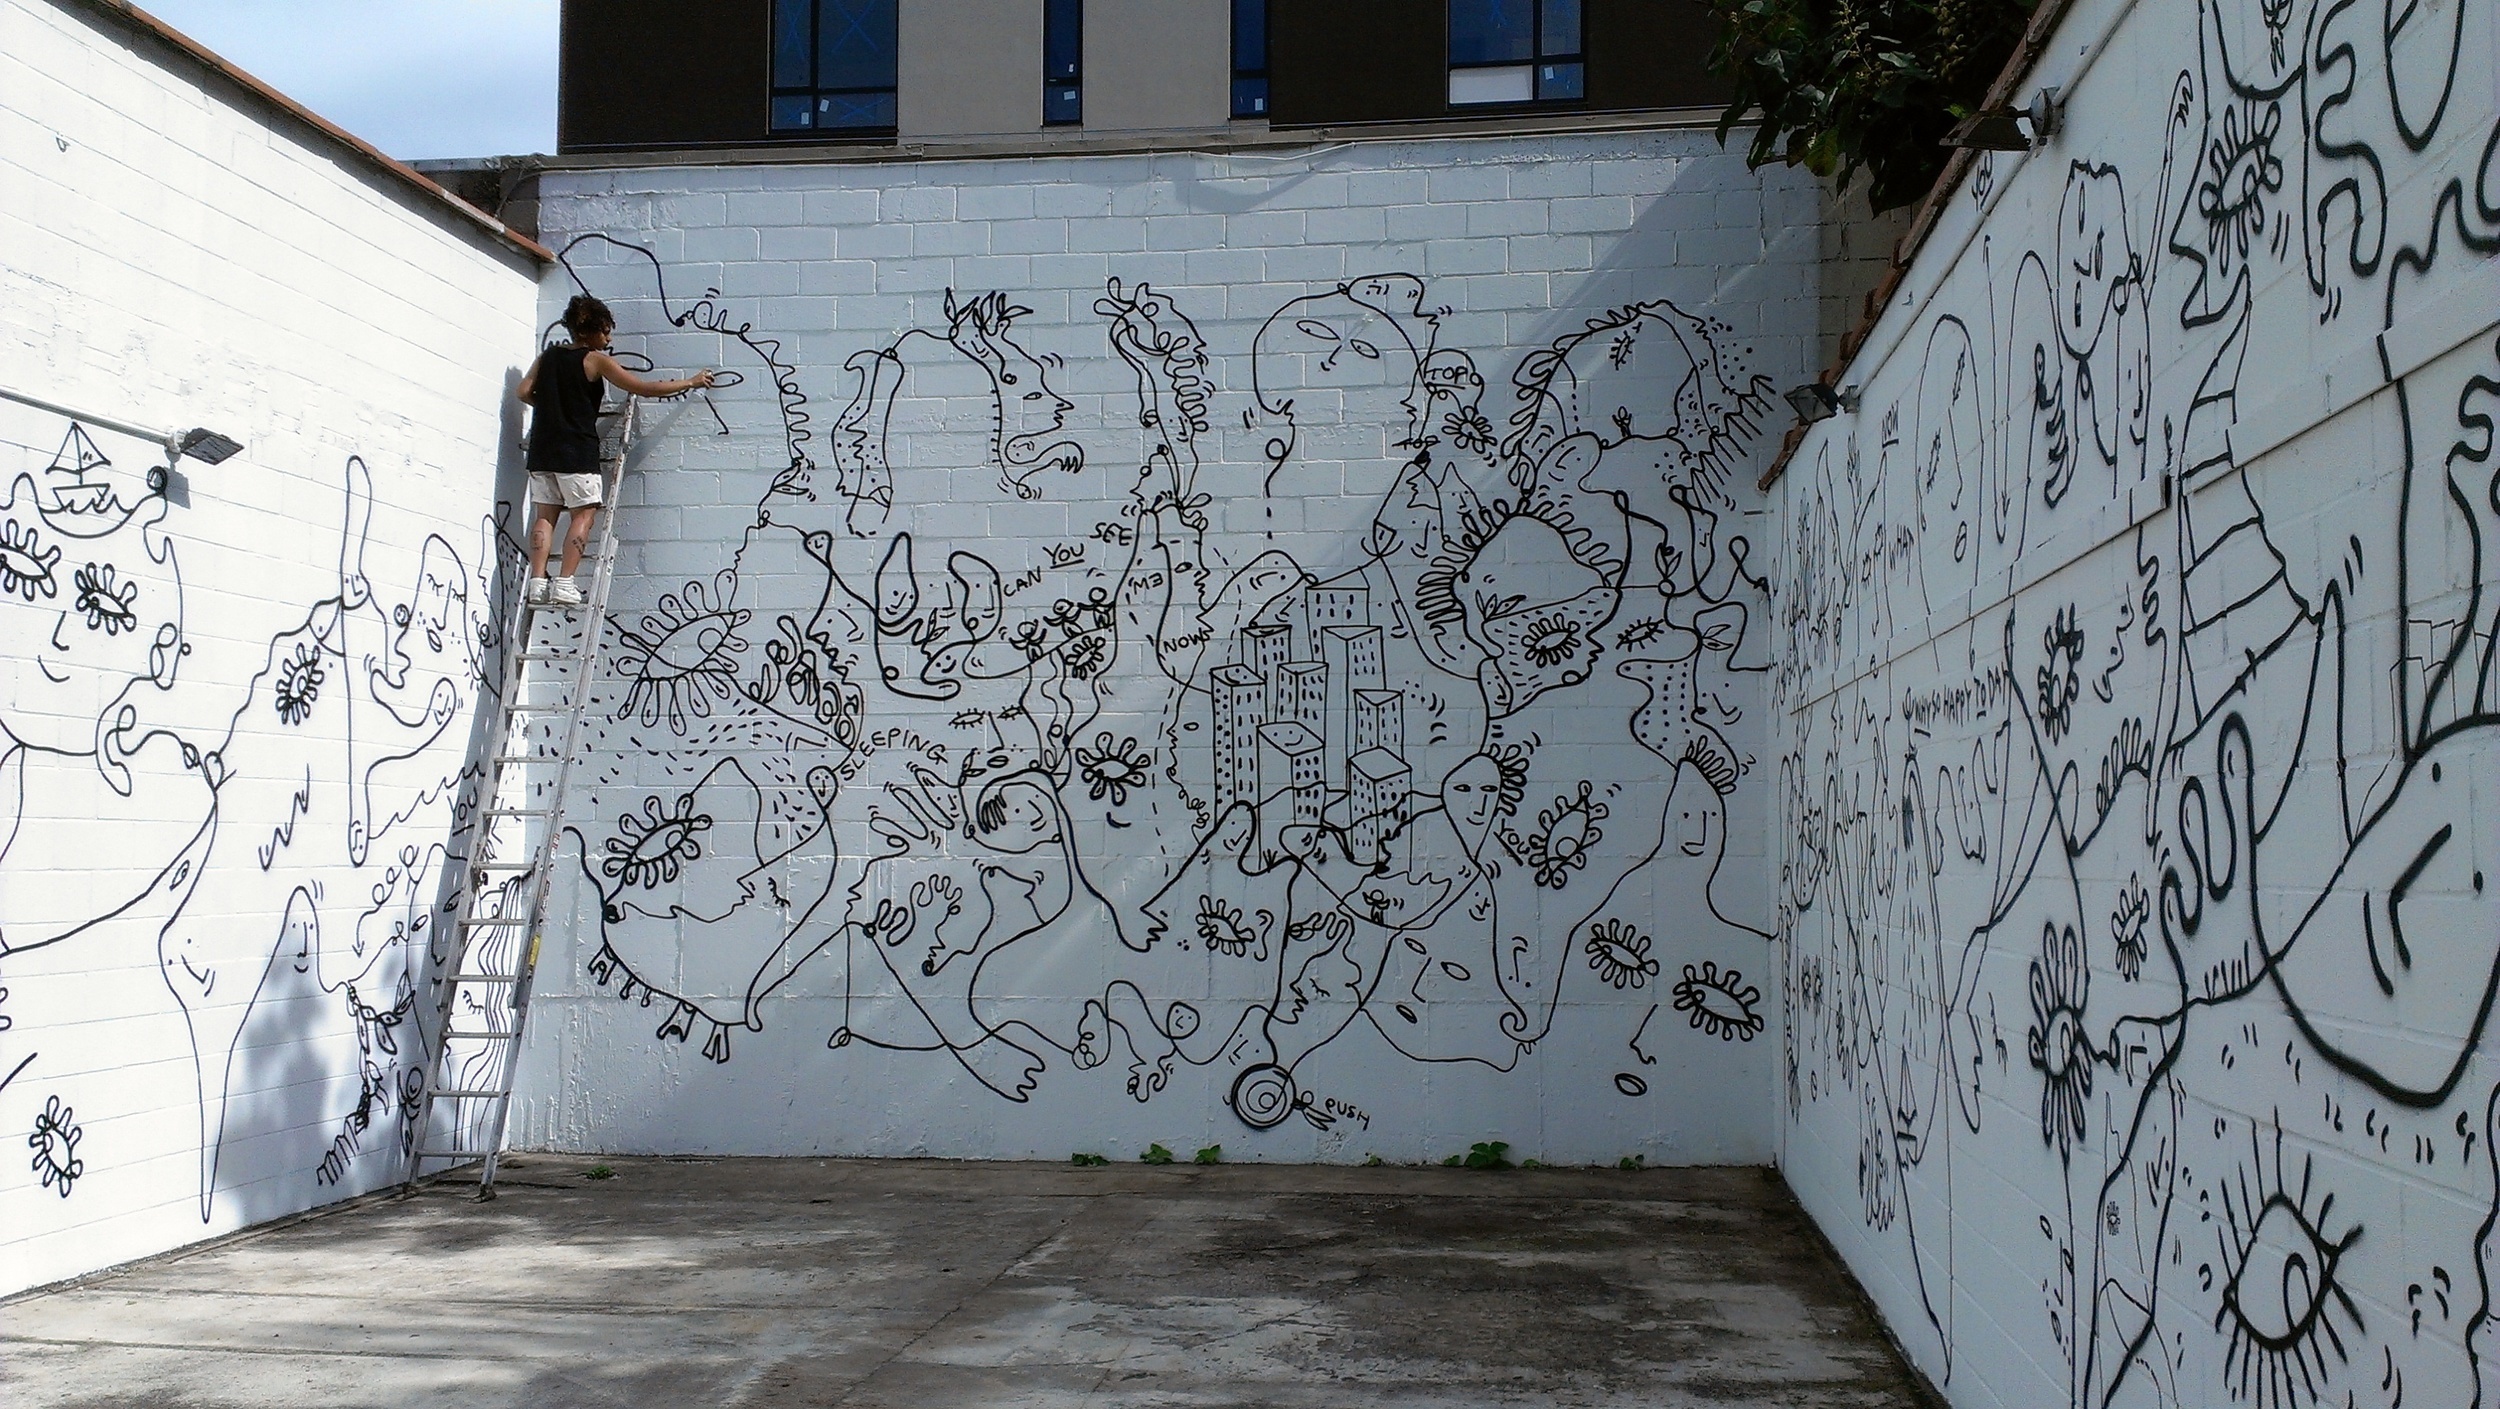 Image: Shantell Martin, Continuous Line, installation view / Image ©Shantell Martin